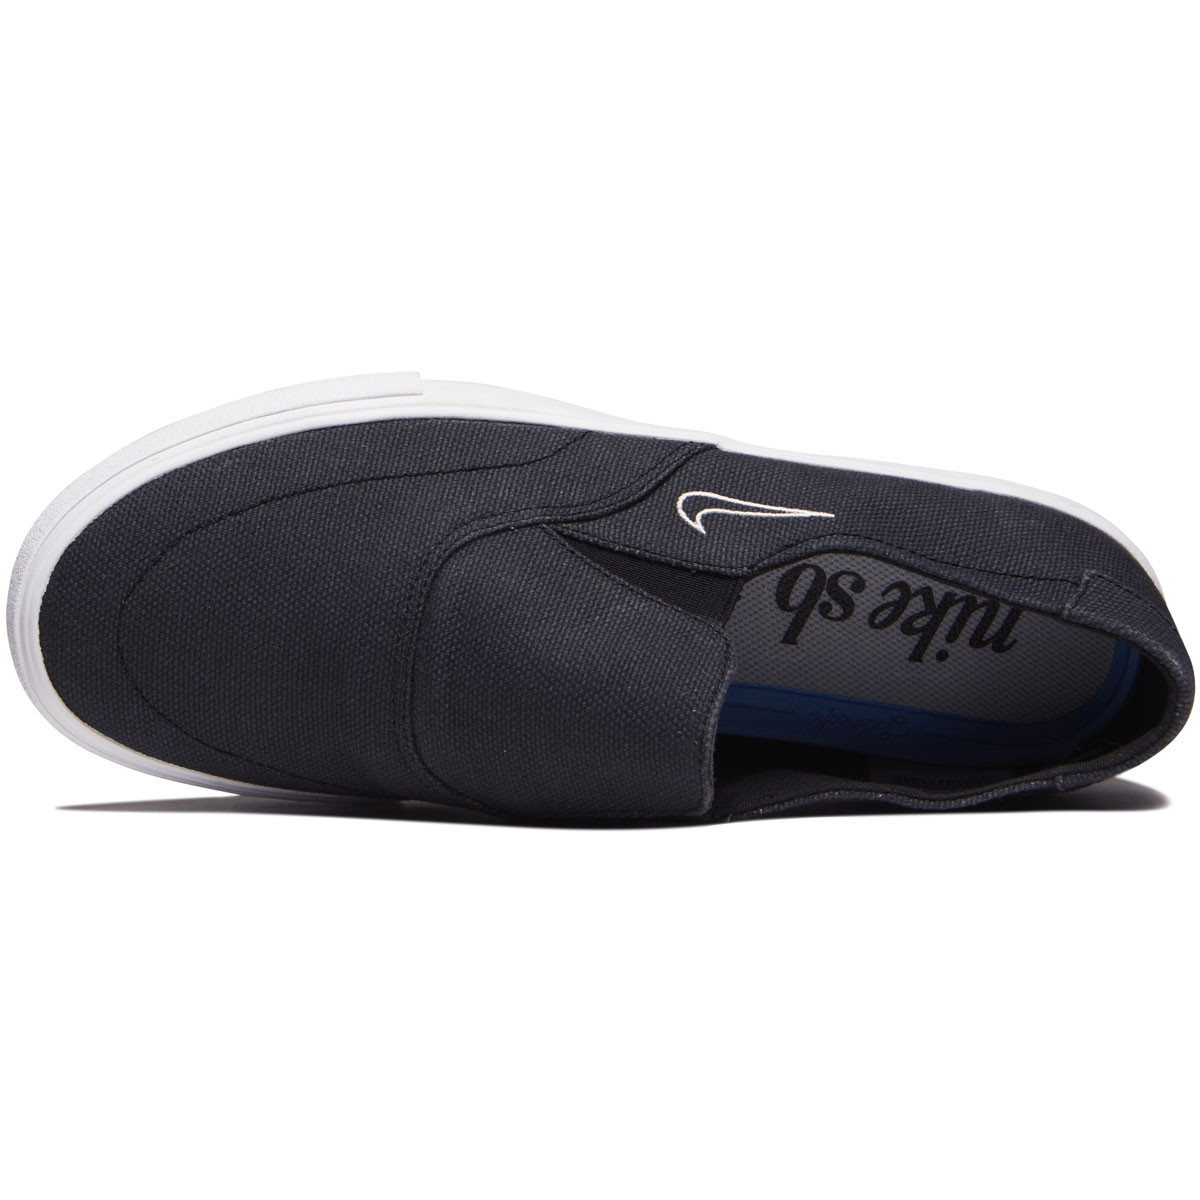 check out 2fd25 35081 Nike SB Portmore II Solarsoft Slip Shoes